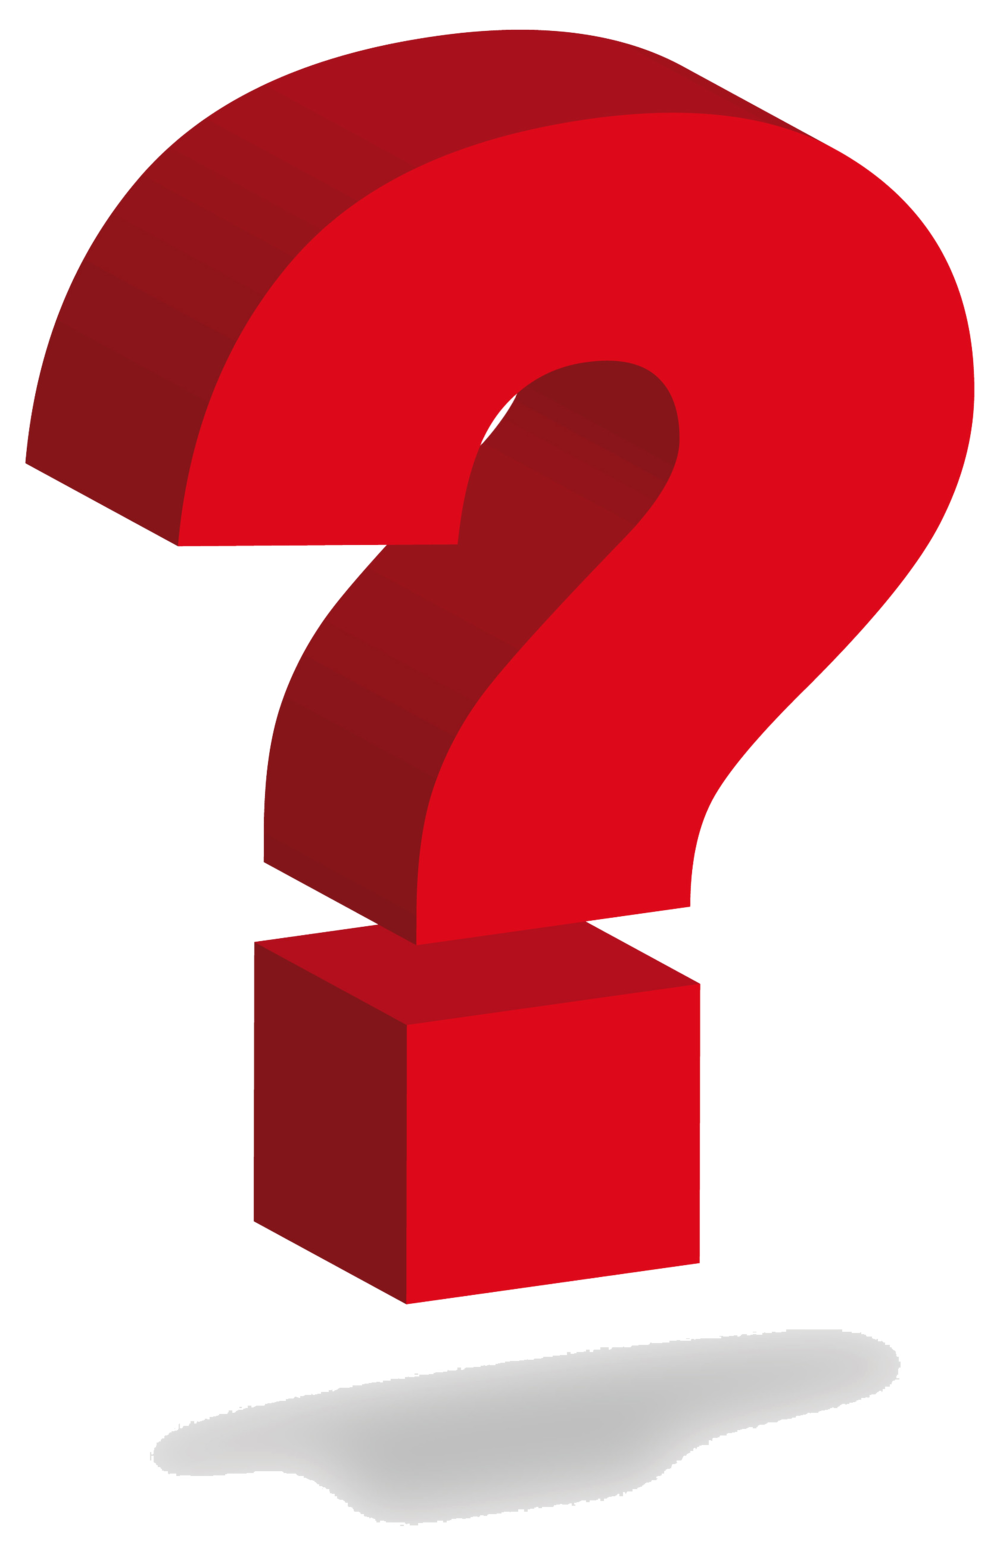 Cool clipart animated.  collection of question